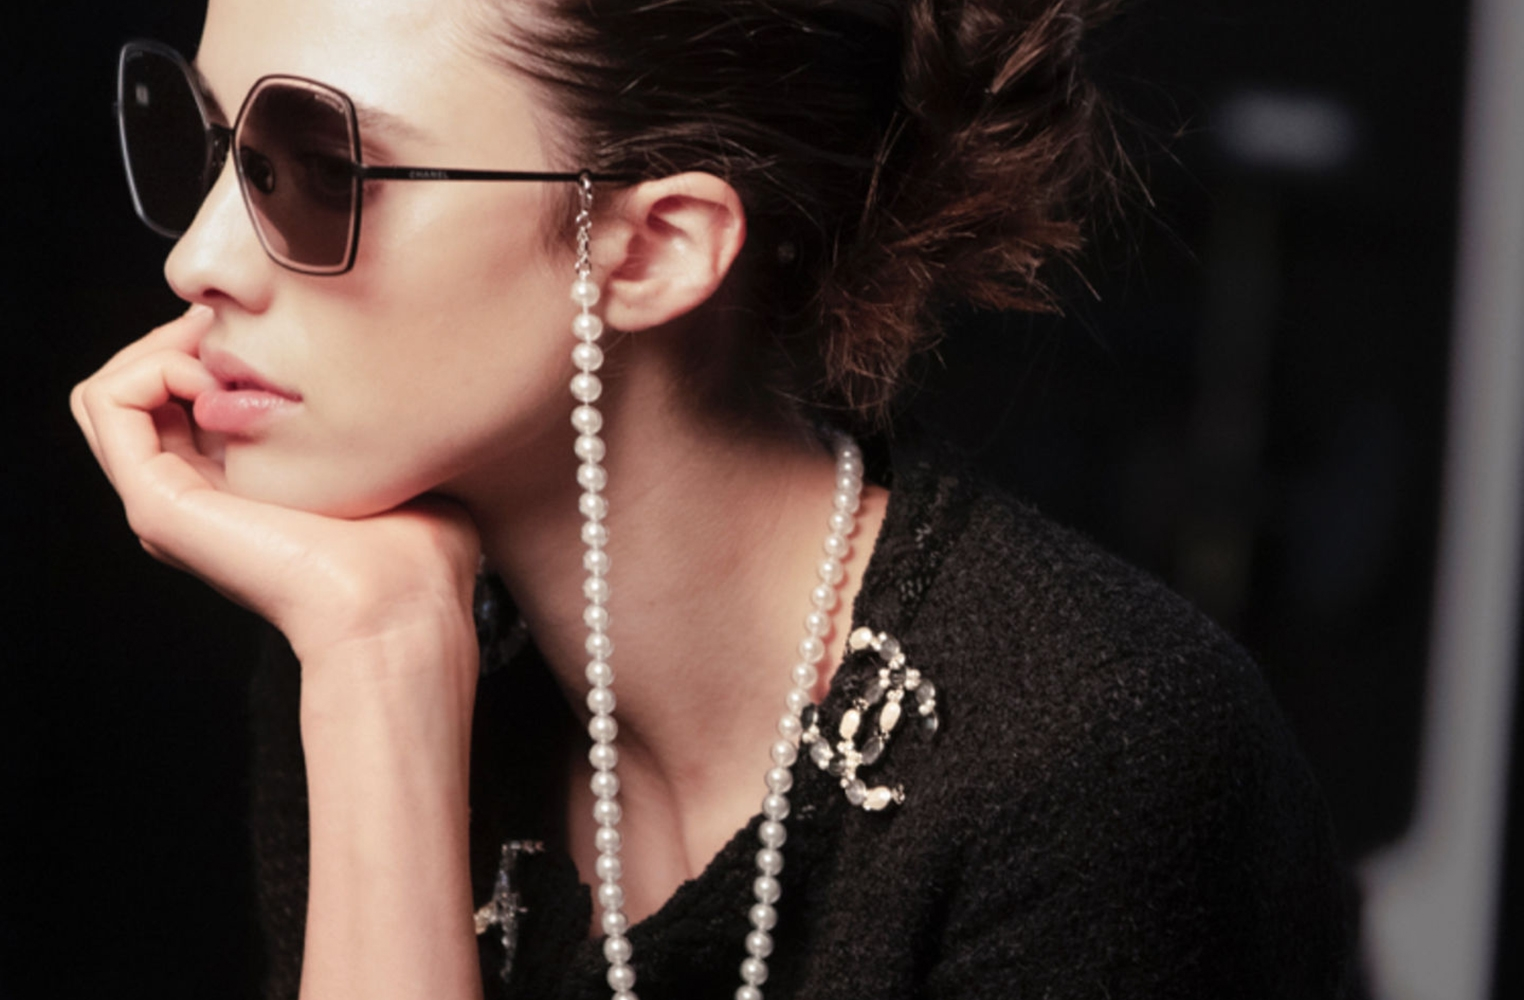 Chanel New Collection - Chanel Sunglasses - Chanel Eyewear - New Collection